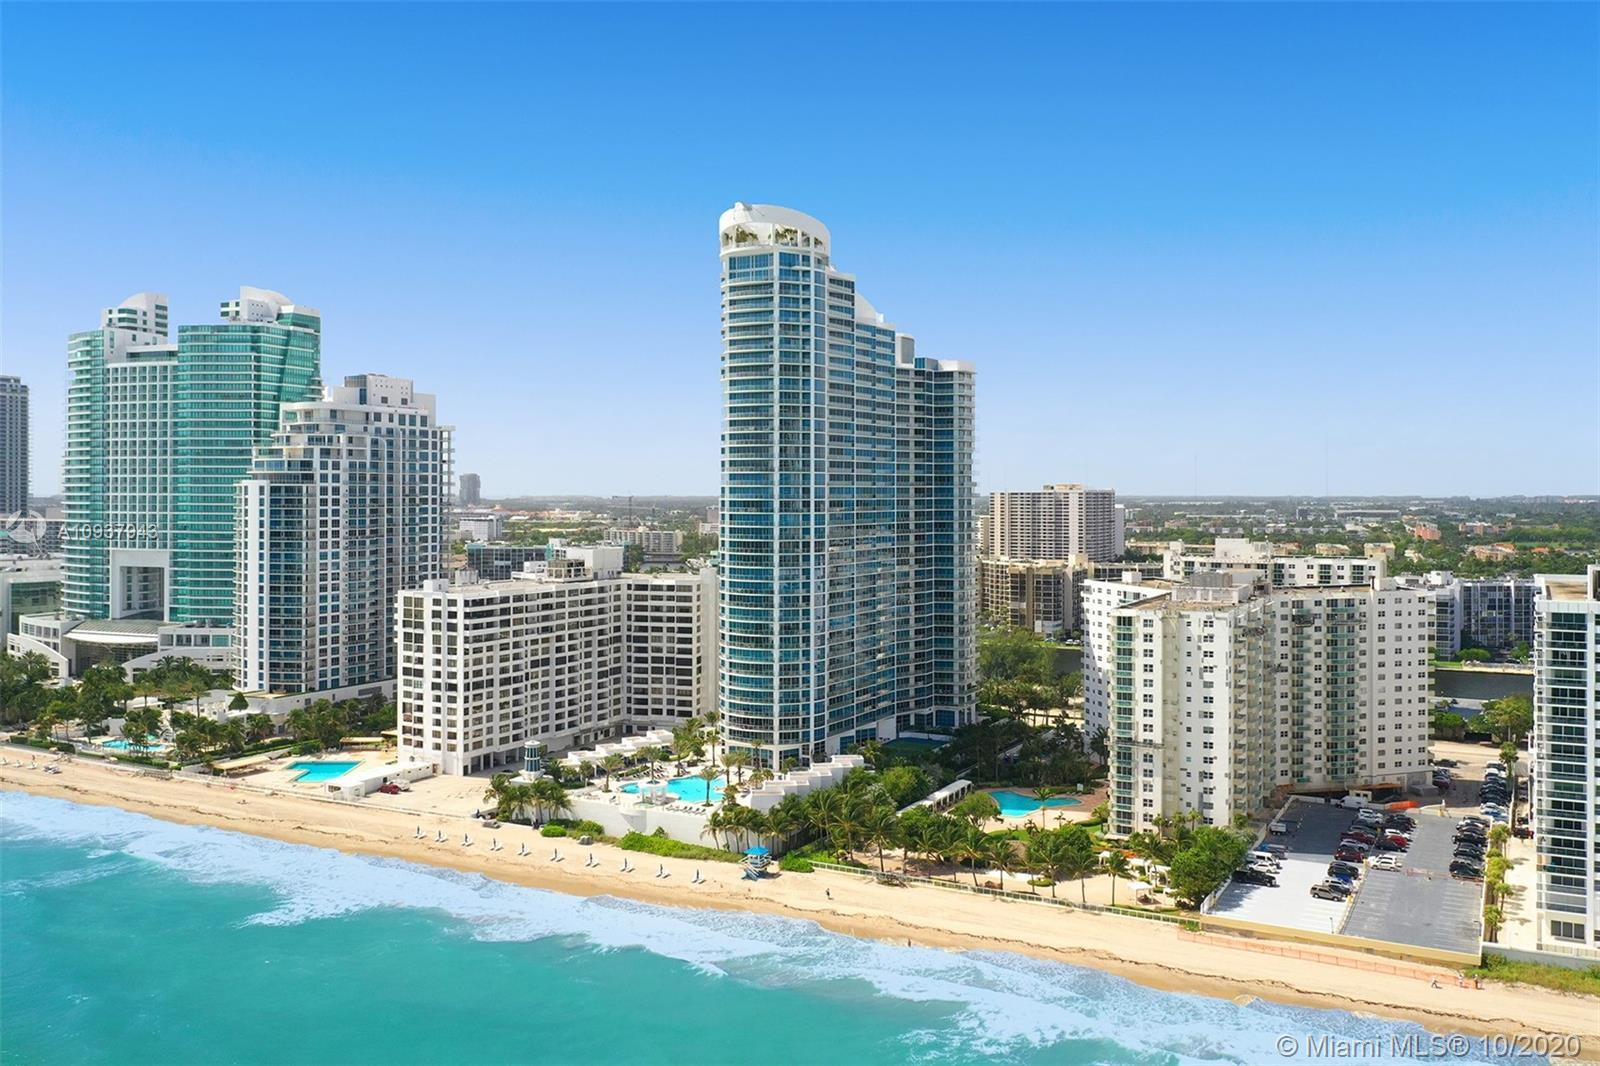 5 Star luxury oceanfront living with fabulous ocean, Intracoastal, and city views from this corner 3